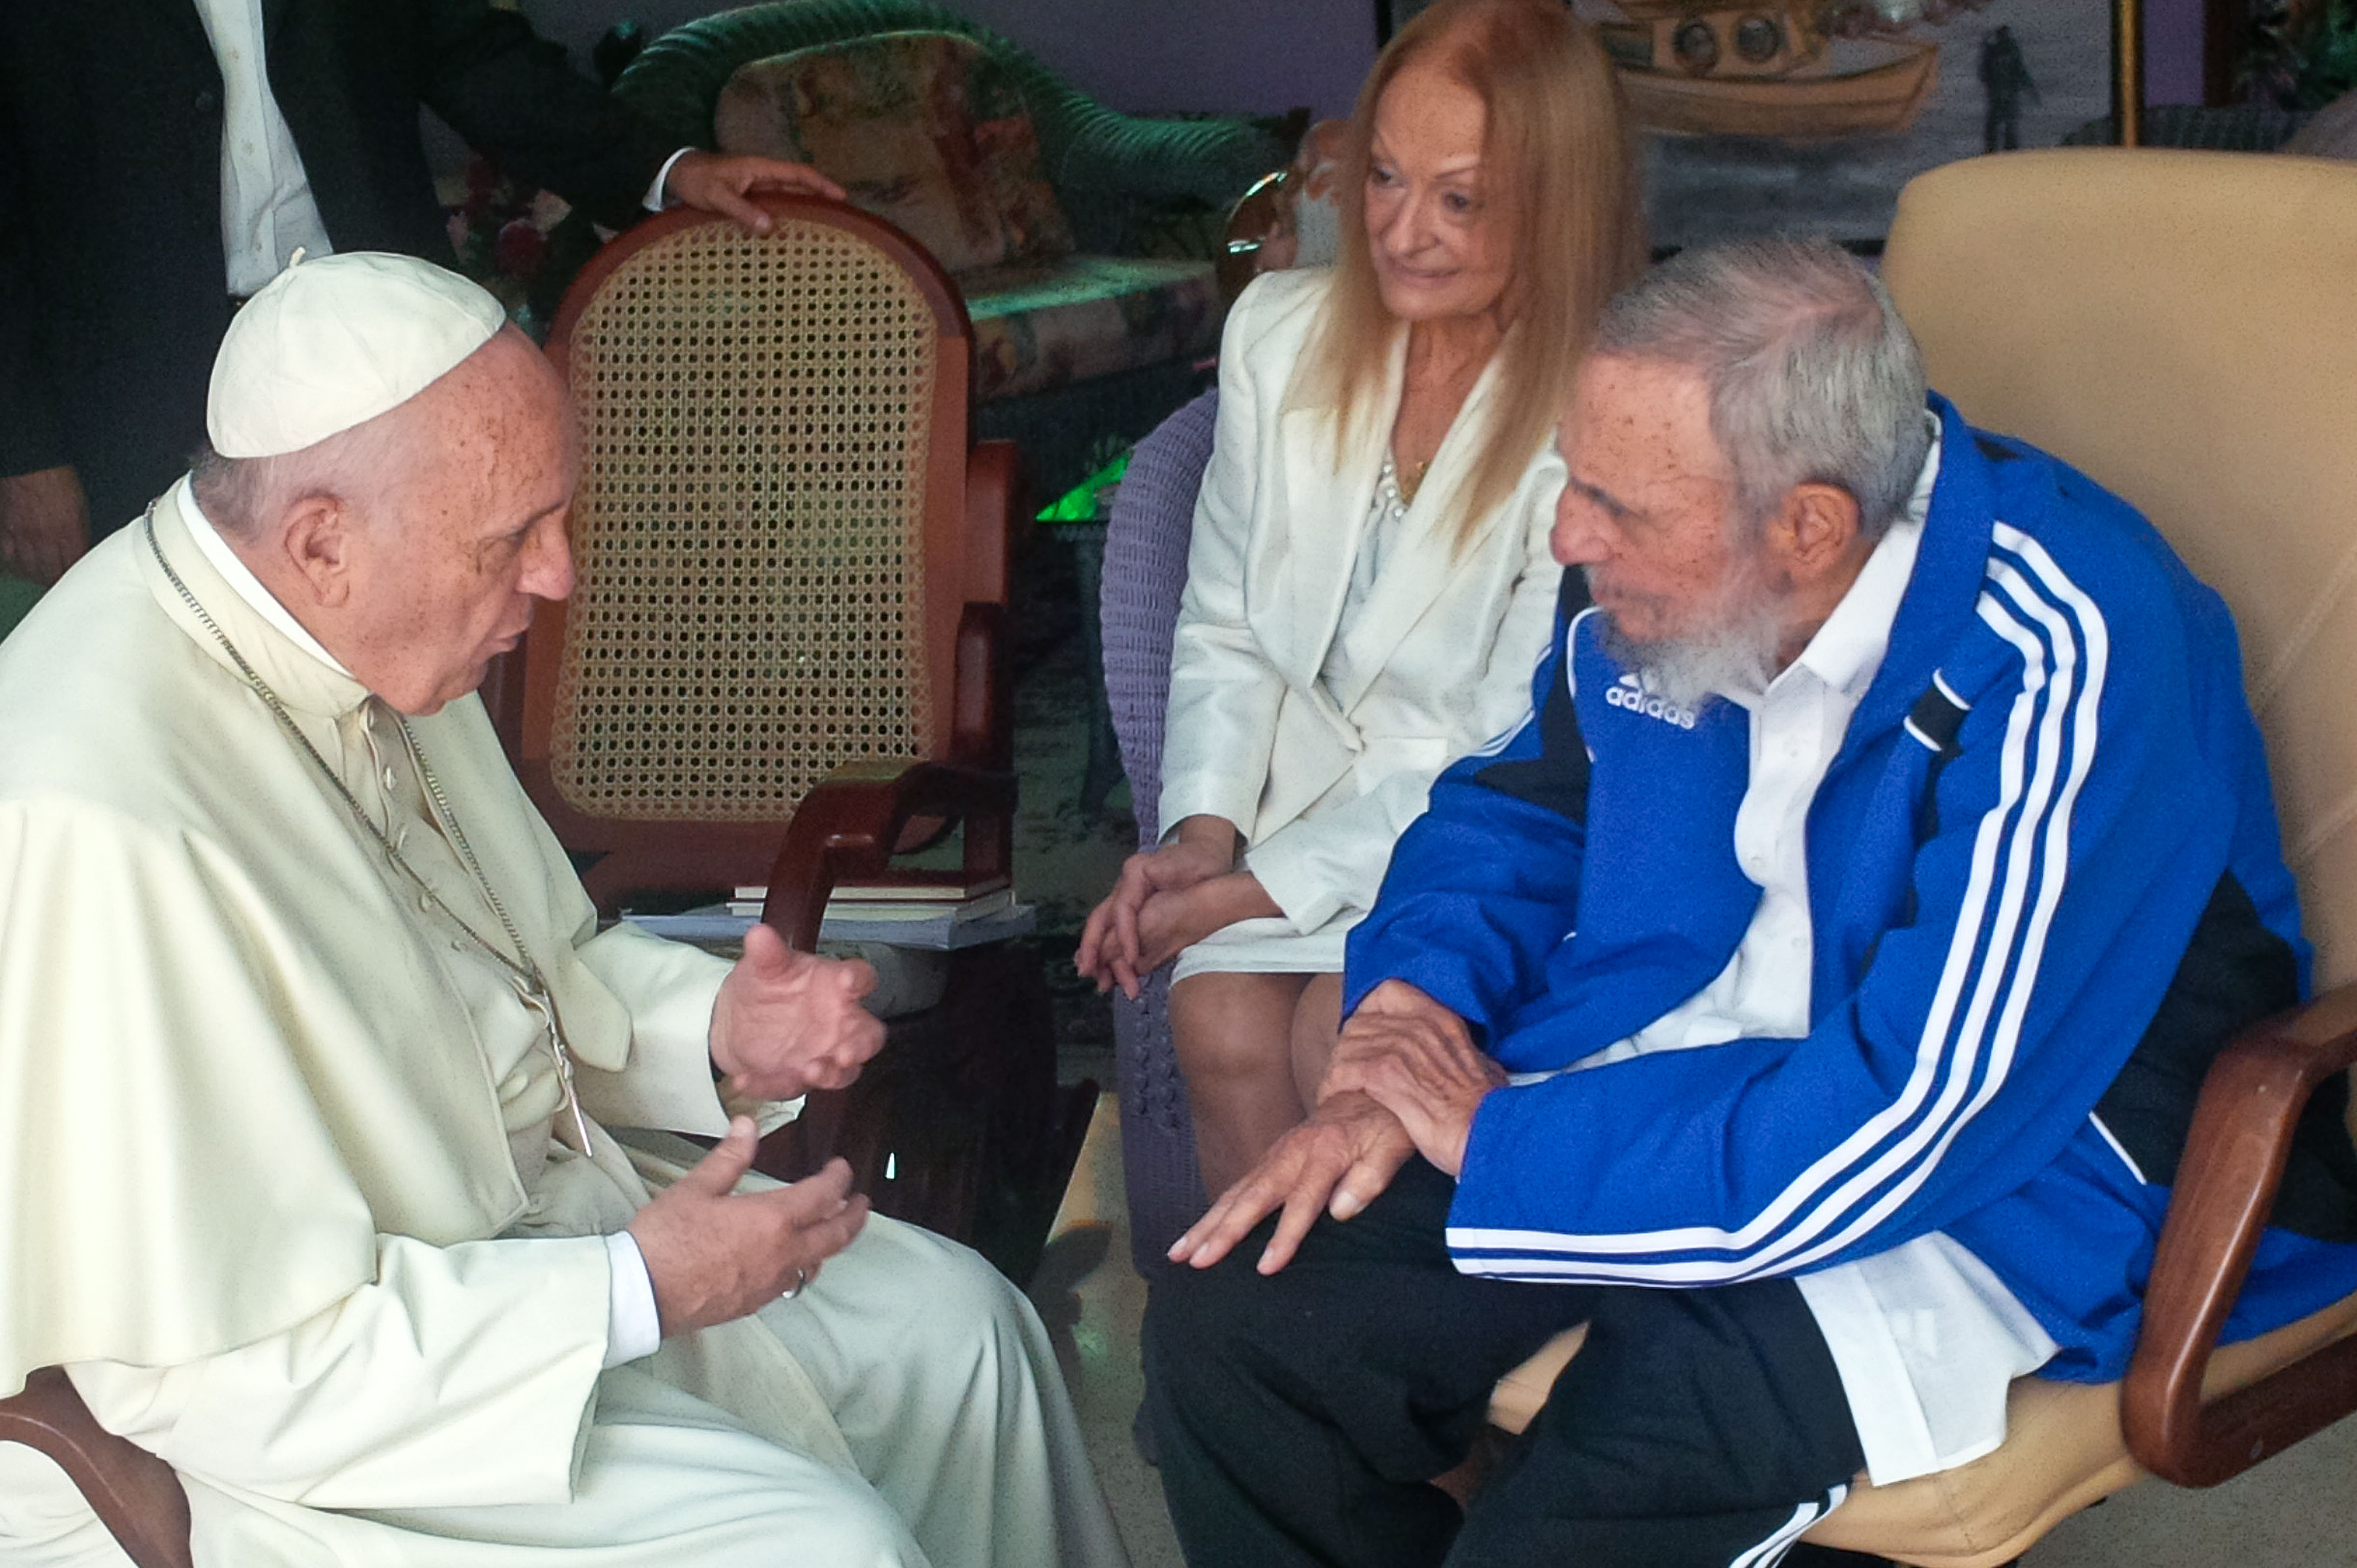 September 20 2015 : Pope Francis meets Fidel Castro at his home in Havana, Cuba.